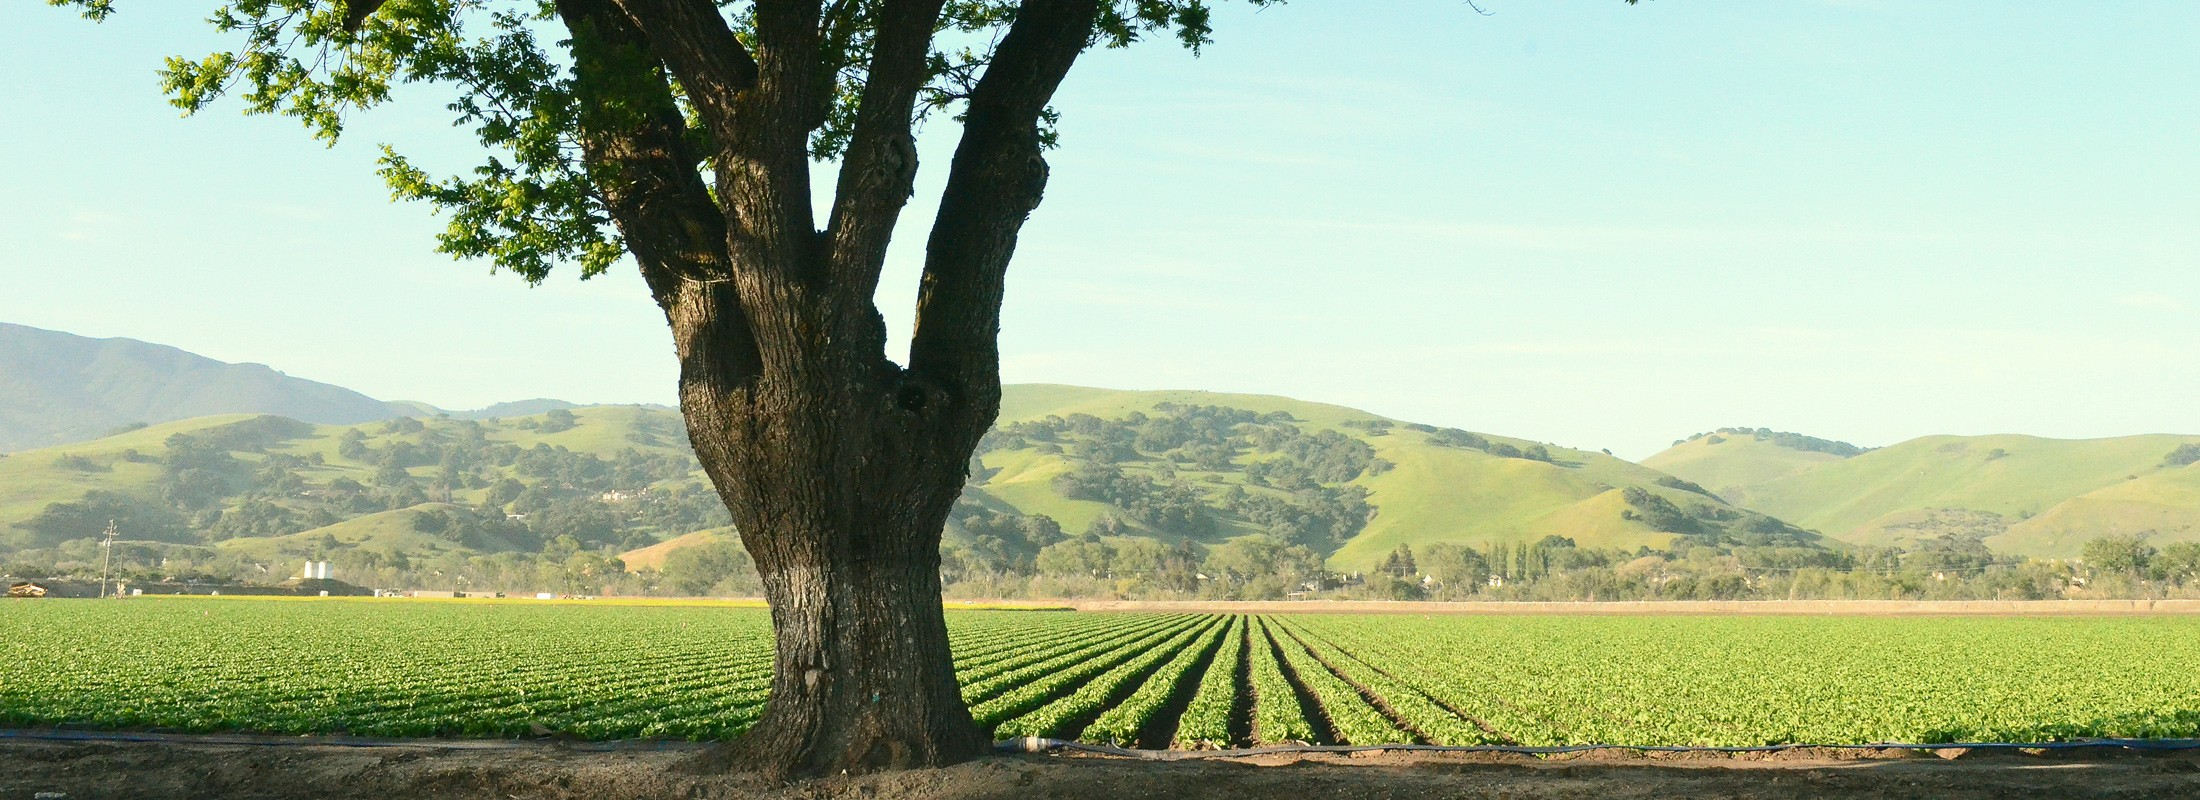 Salinas valley field, tree in foreground